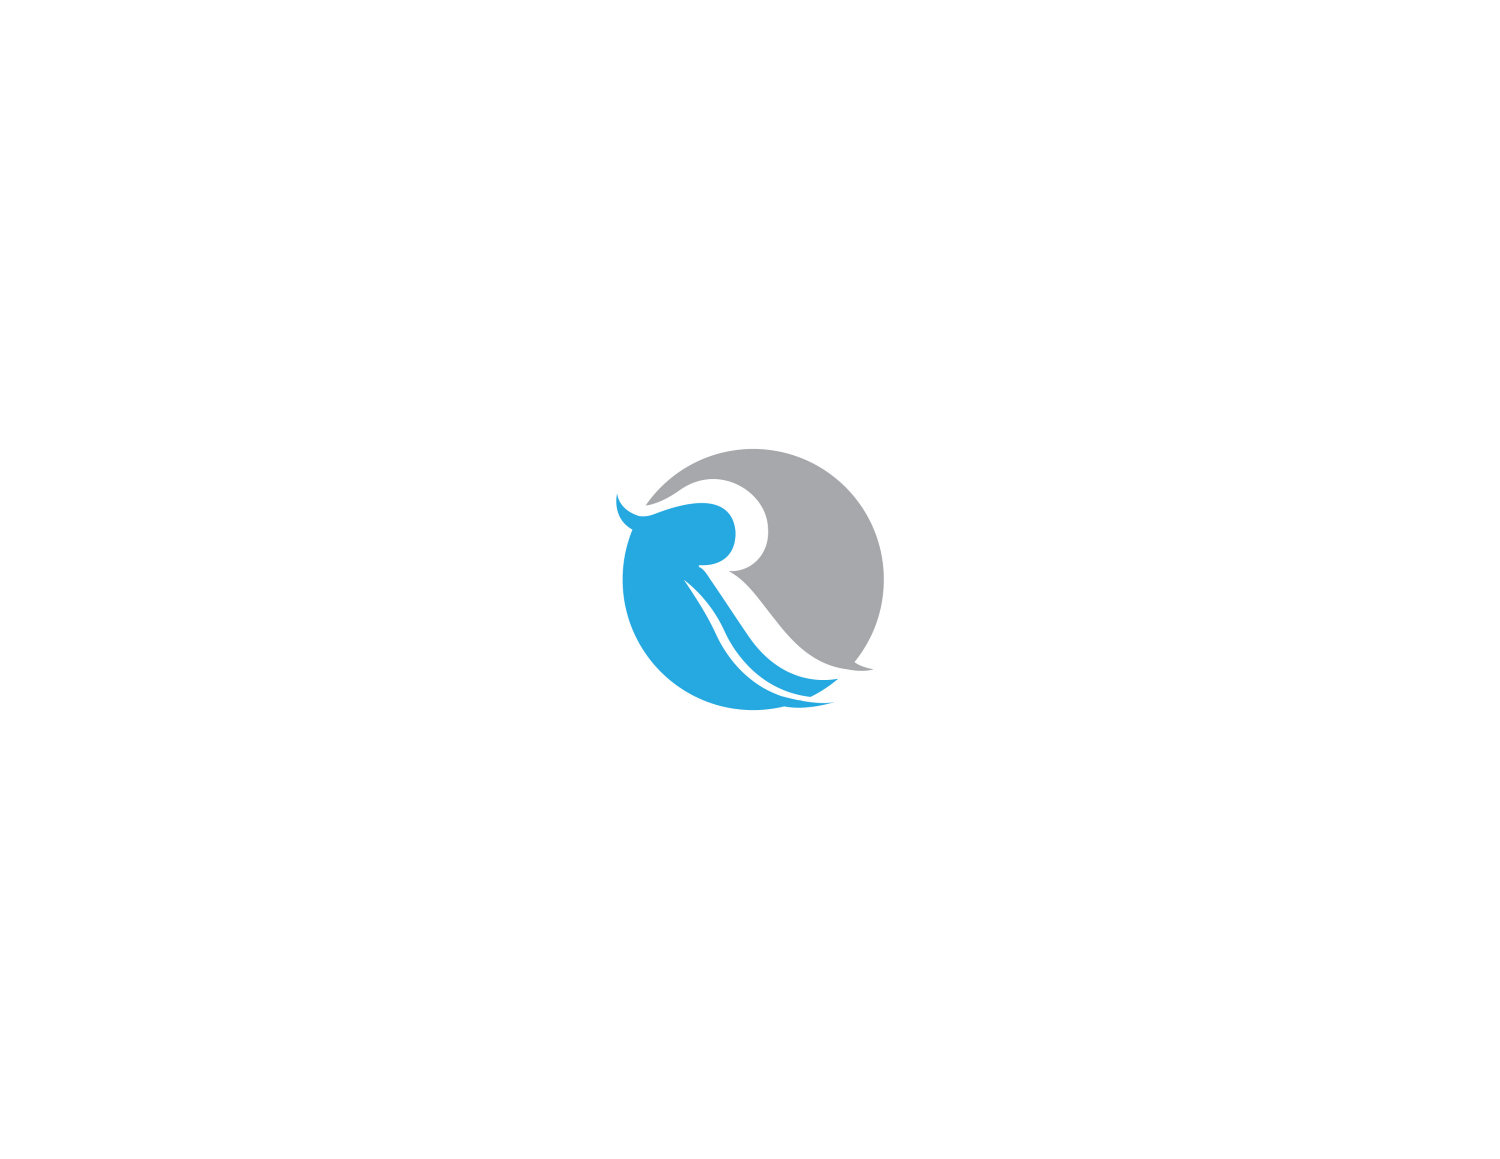 Elegant Serious Logo Design For Symbol Of Wind R By Eric 15